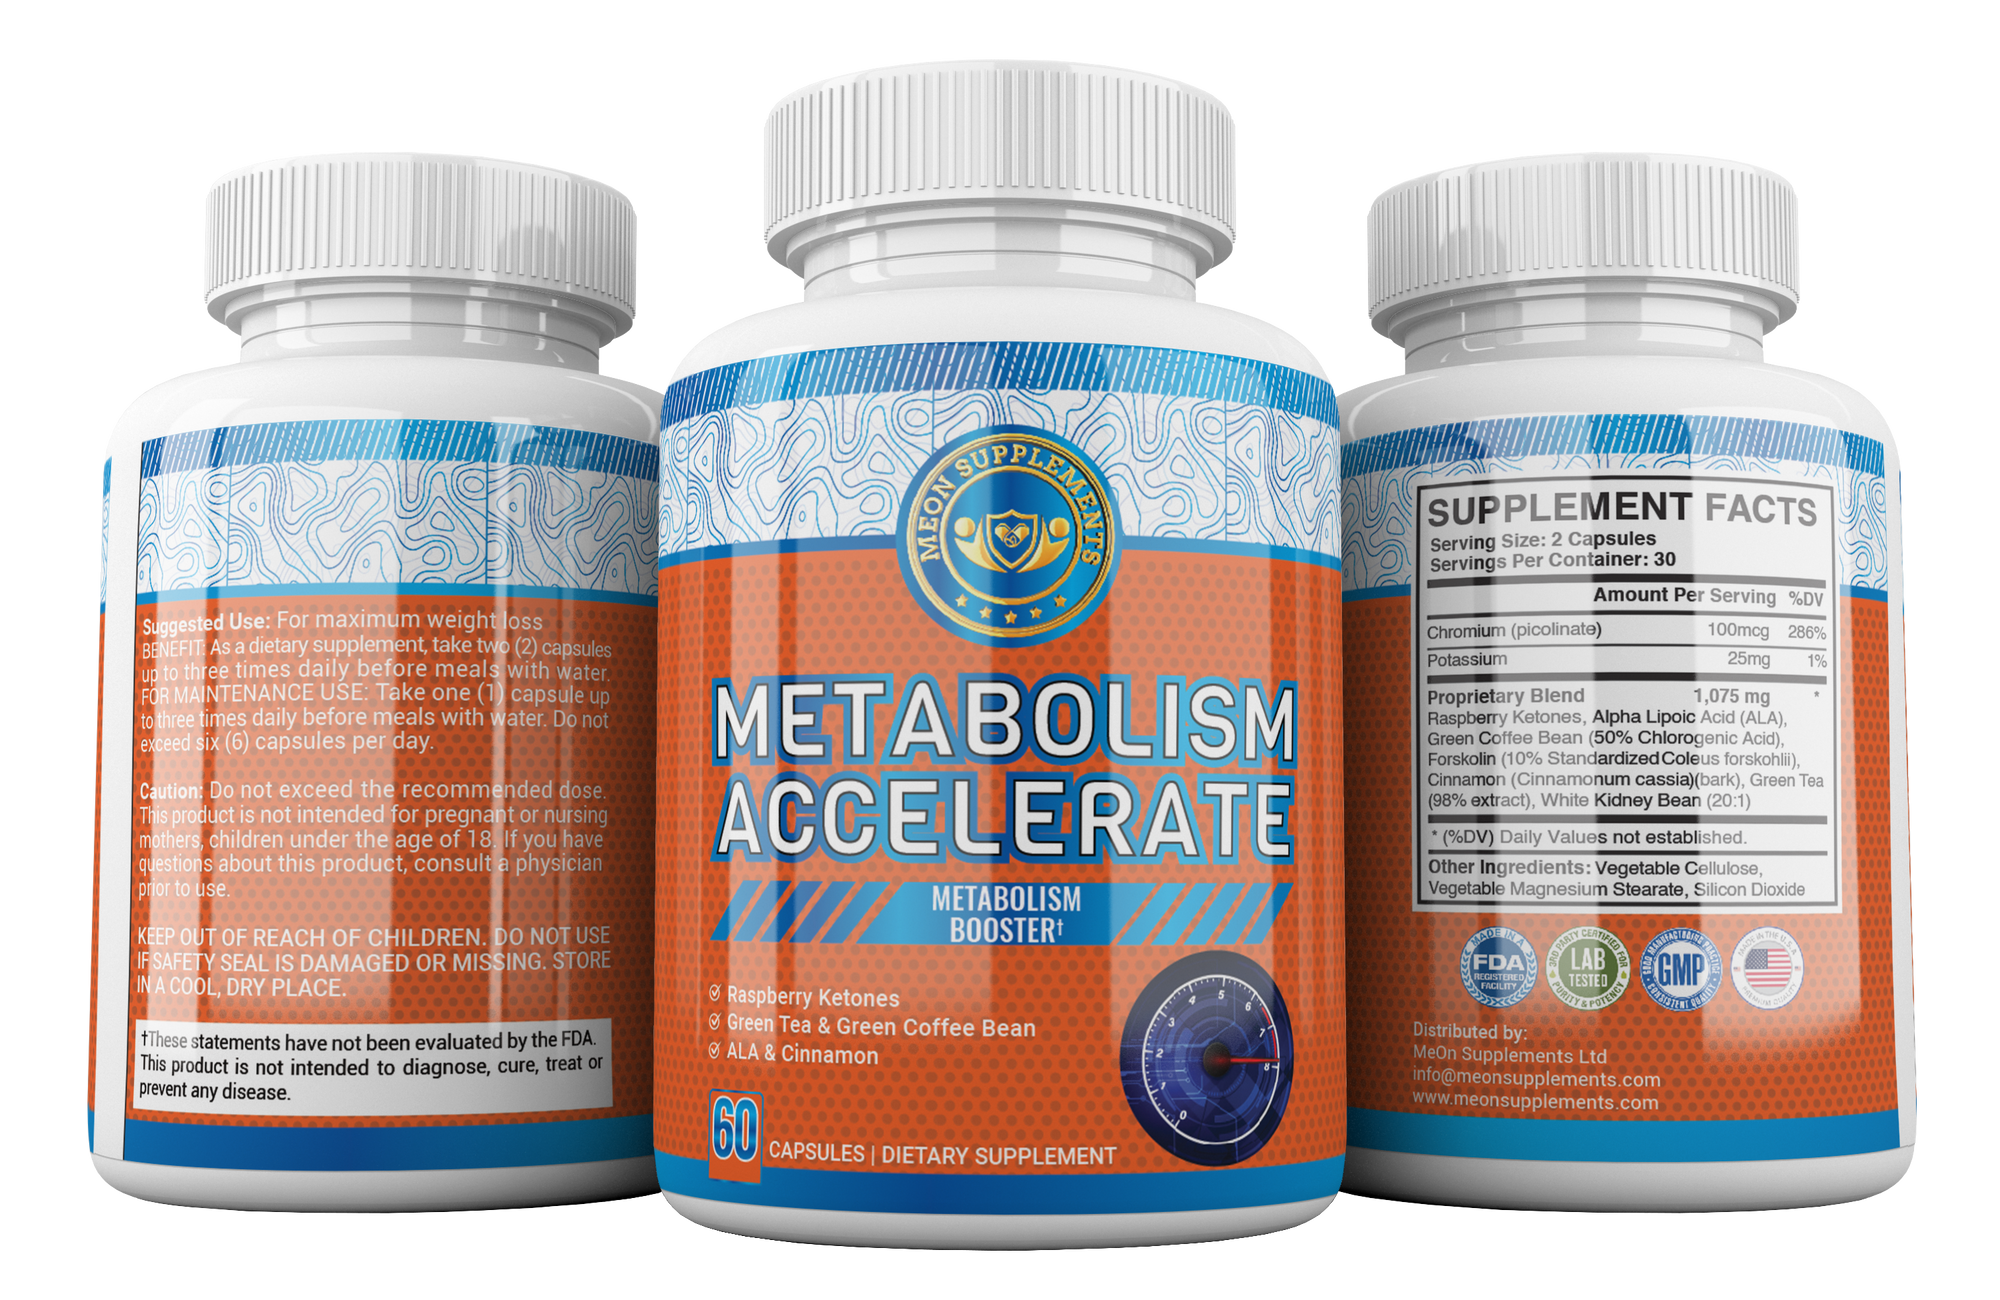 Metabolism Accelerate - MEON Supplements